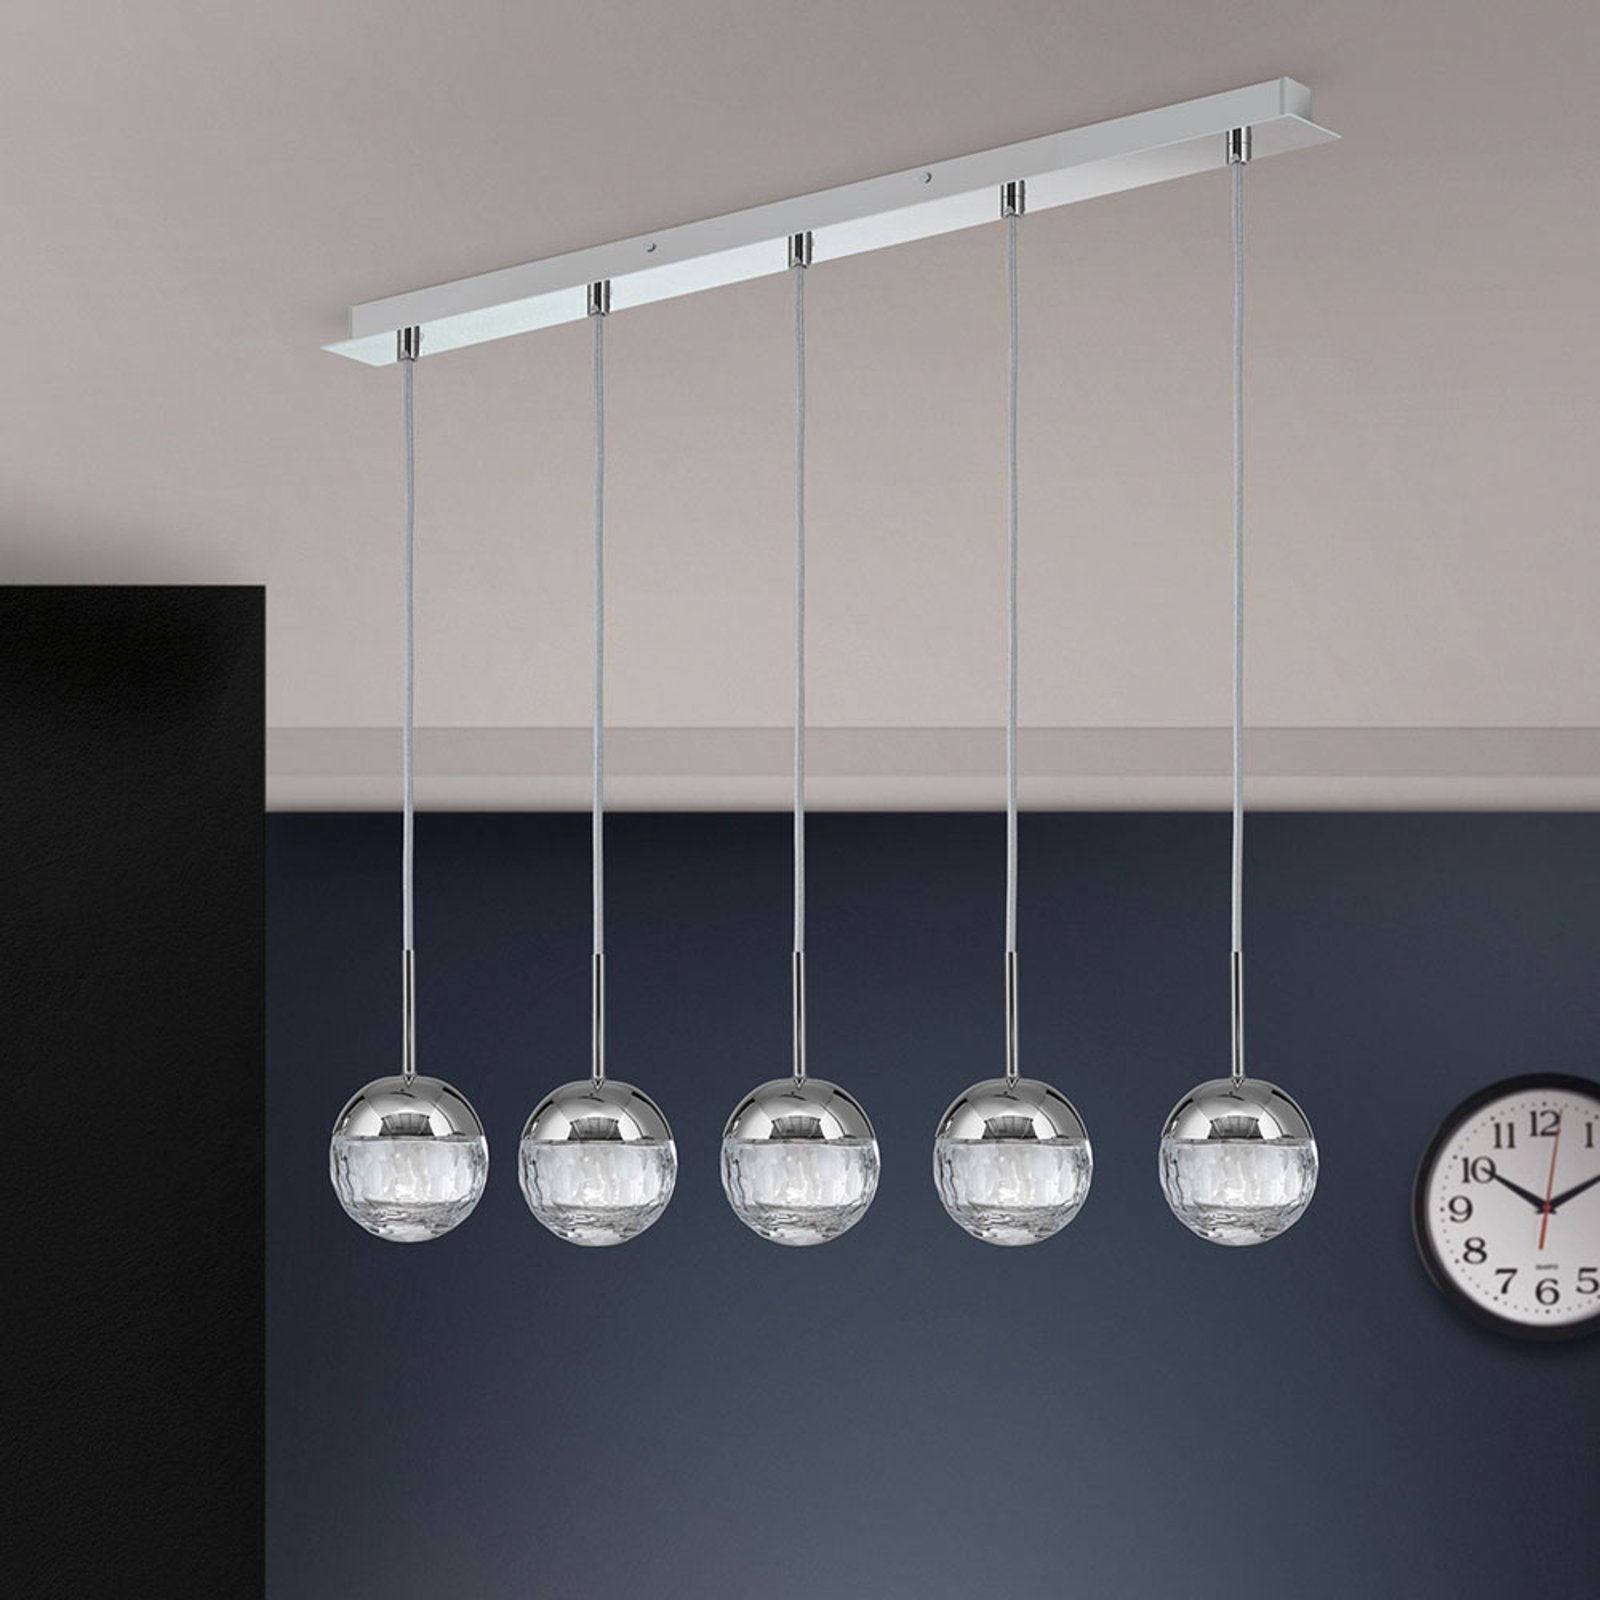 LED hanglamp Ball, 5-lamps, nikkel/zilver